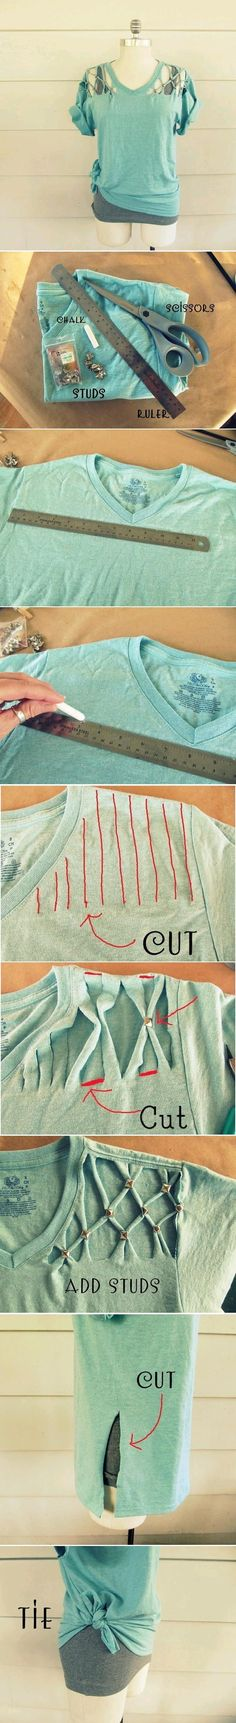 DIY Lattice T Shirt Pictures, Photos, and Images for Facebook, Tumblr, Pinterest, and Twitter